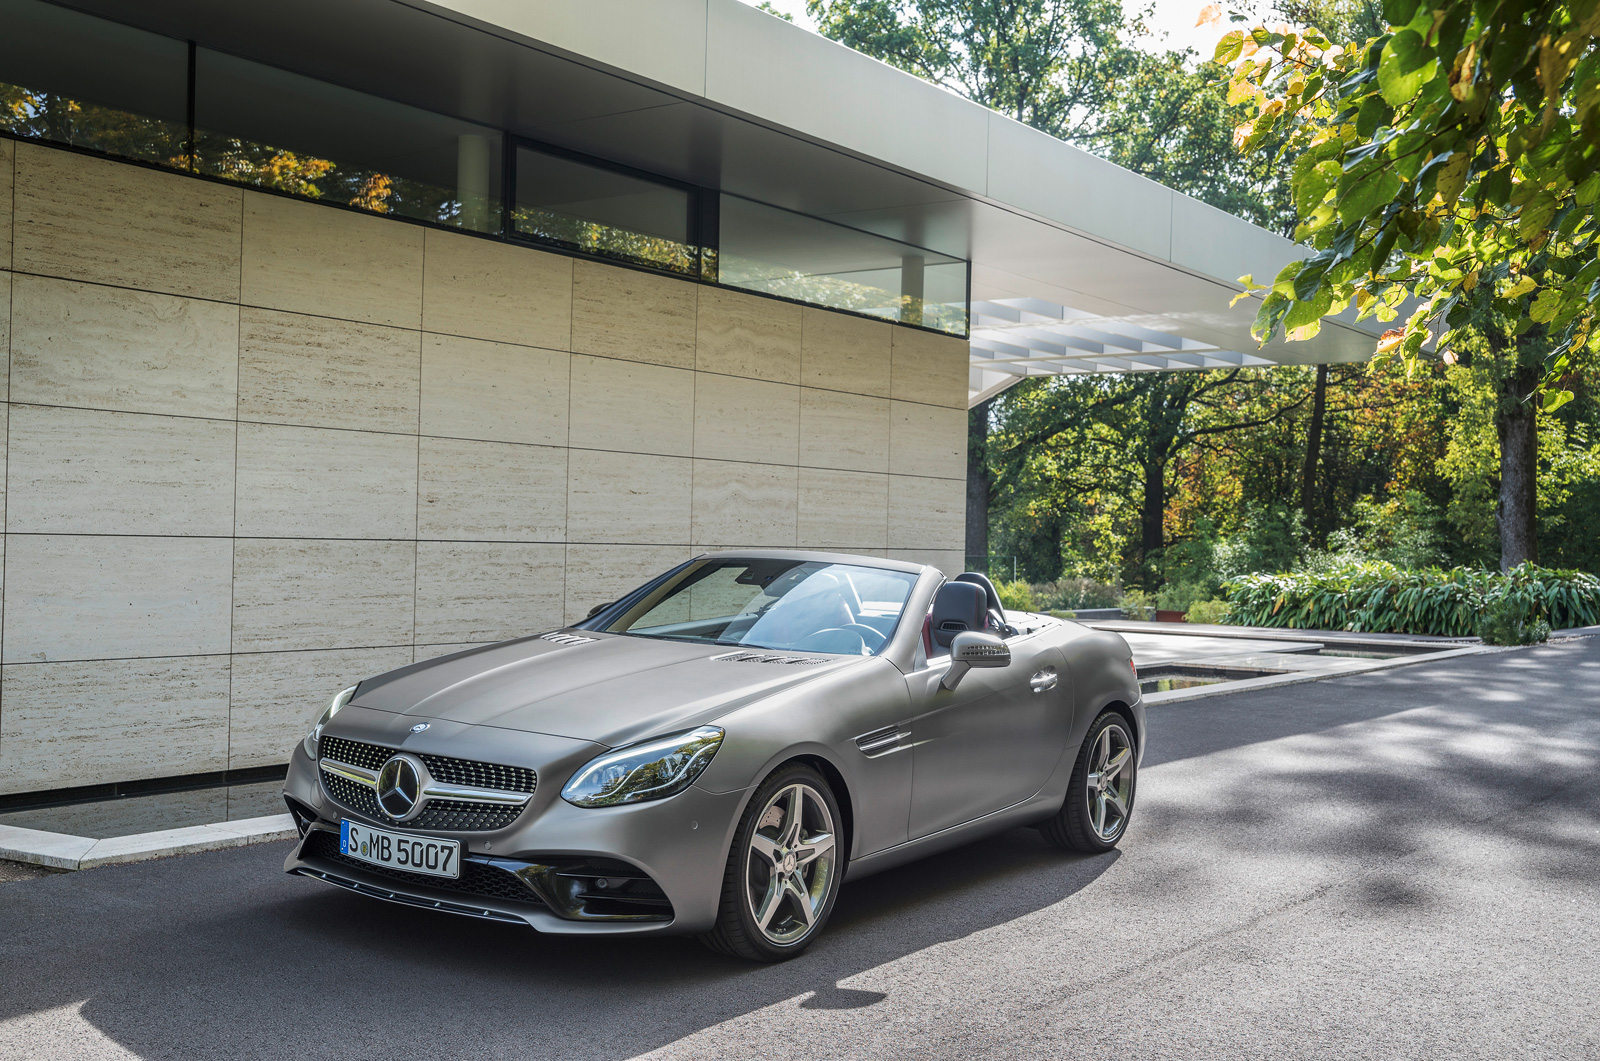 2017 mercedes benz slc replaces slk with turbo power for Slc mercedes benz